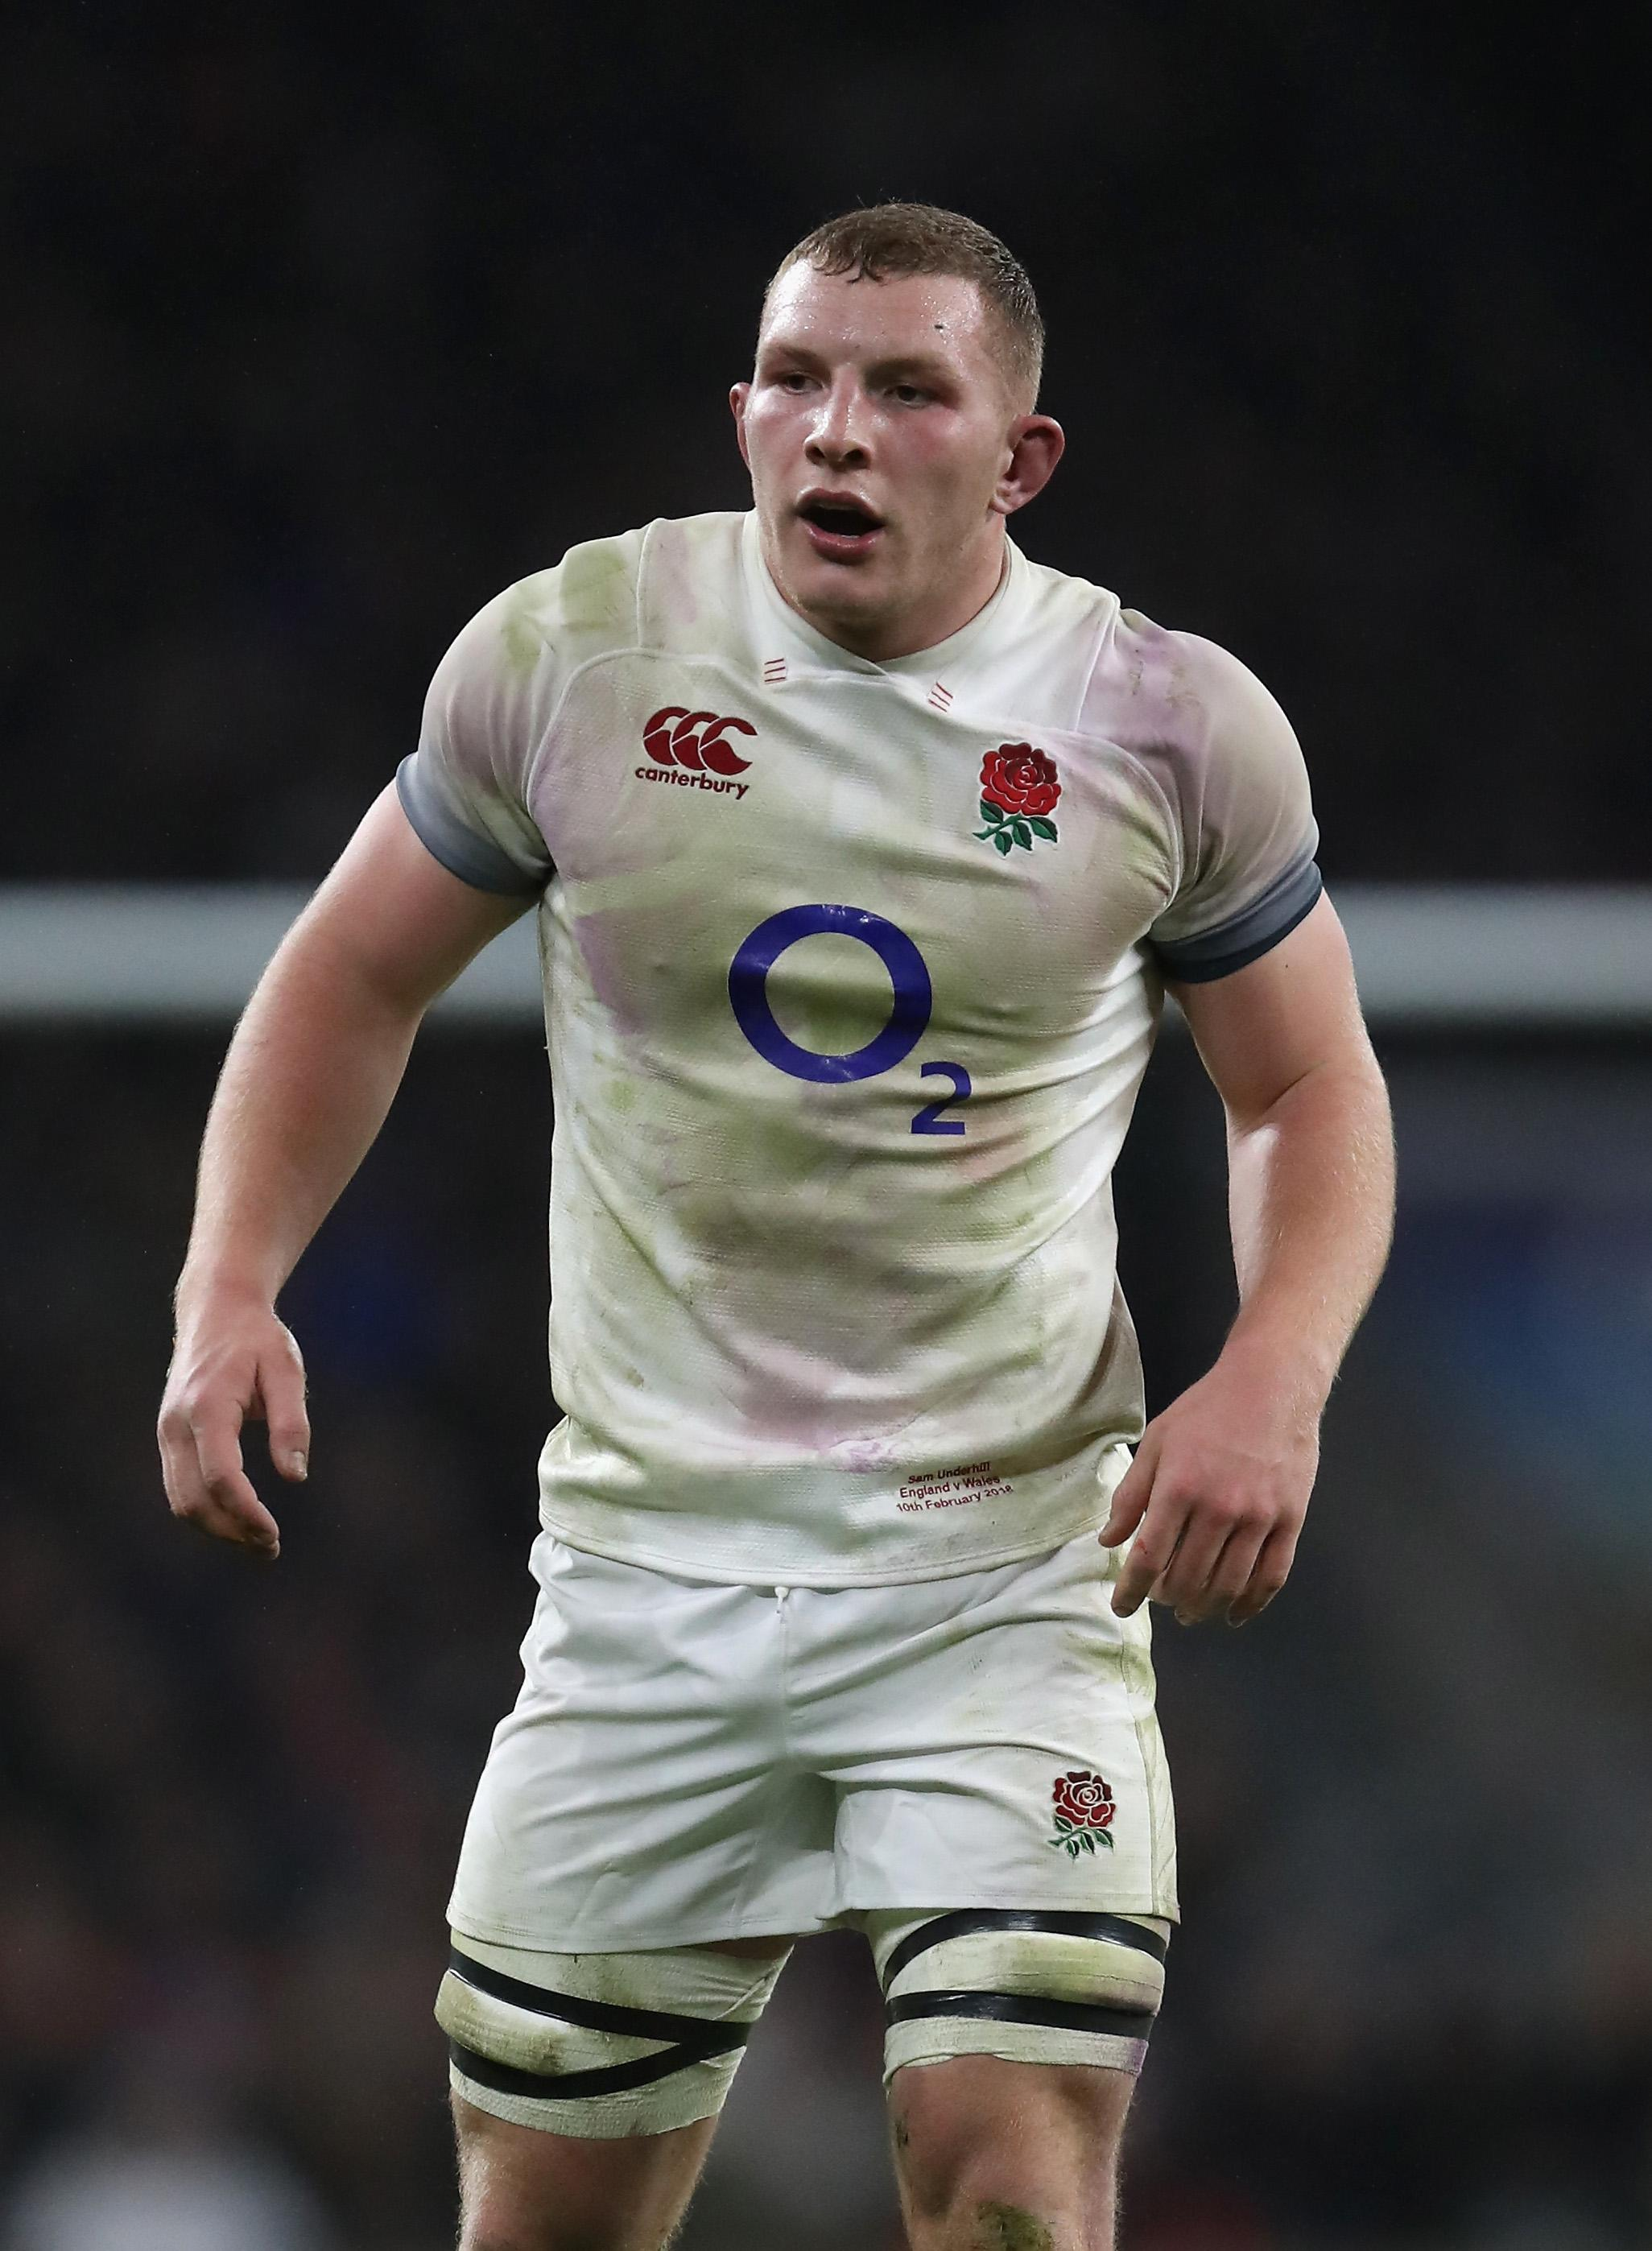 Underhill was superb for England in the Autumn internationals and put his best foot forward for a World Cup place